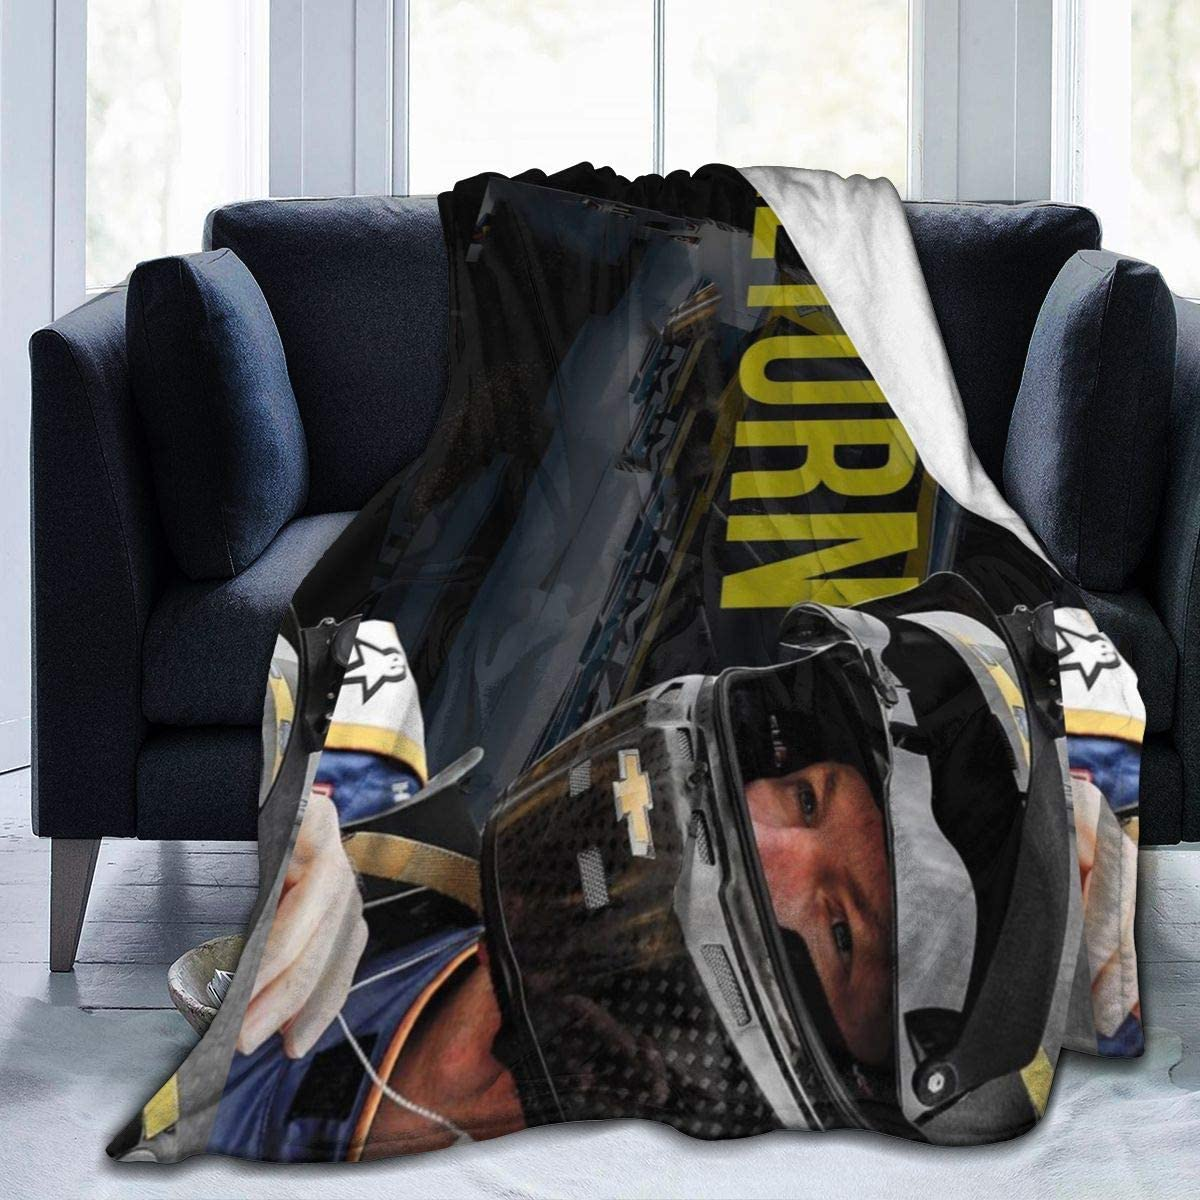 """Honghuawenhua Winter Super Soft Warm Dale Earnhardt Jr Thick FleeceThrow Blanket for Home 50""""x40"""""""